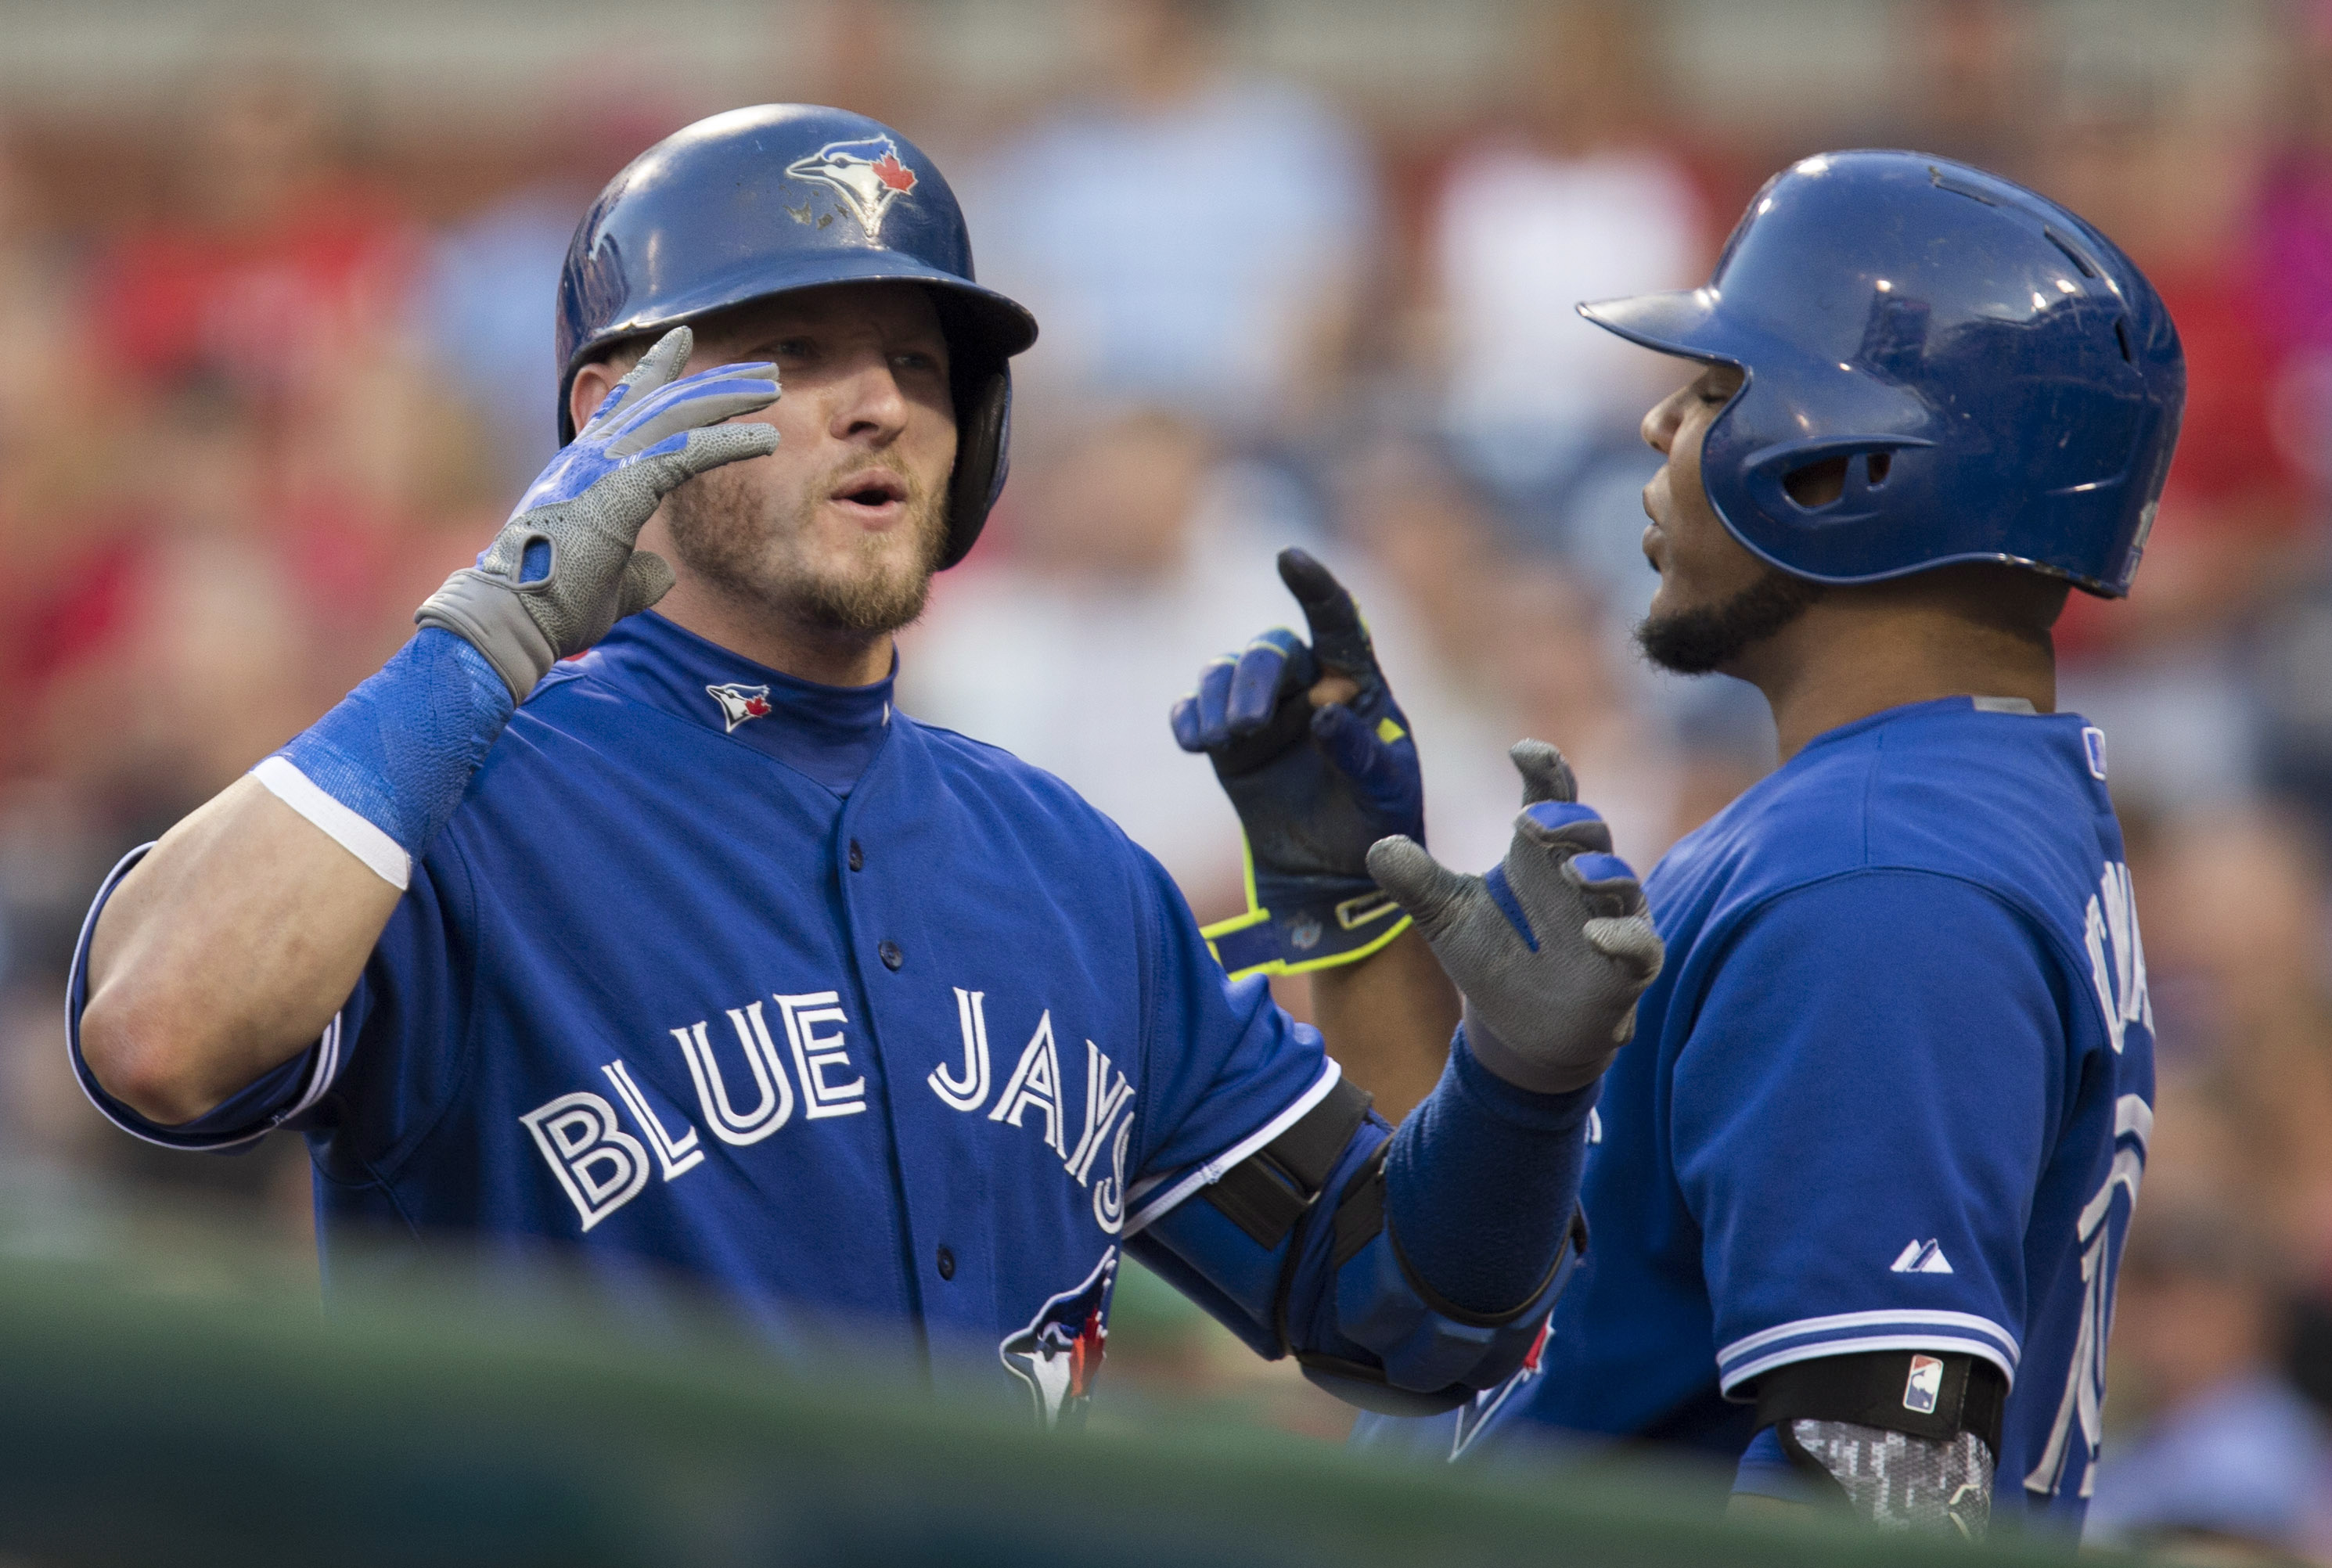 Toronto Blue Jays' Josh Donaldson, left, celebrates with Edwin Encarnacion after hitting a home run during the first inning of a baseball game against the Philadelphia Phillies, Tuesday, Aug. 18, 2015, in Philadelphia. (AP Photo/Laurence Kesterson)